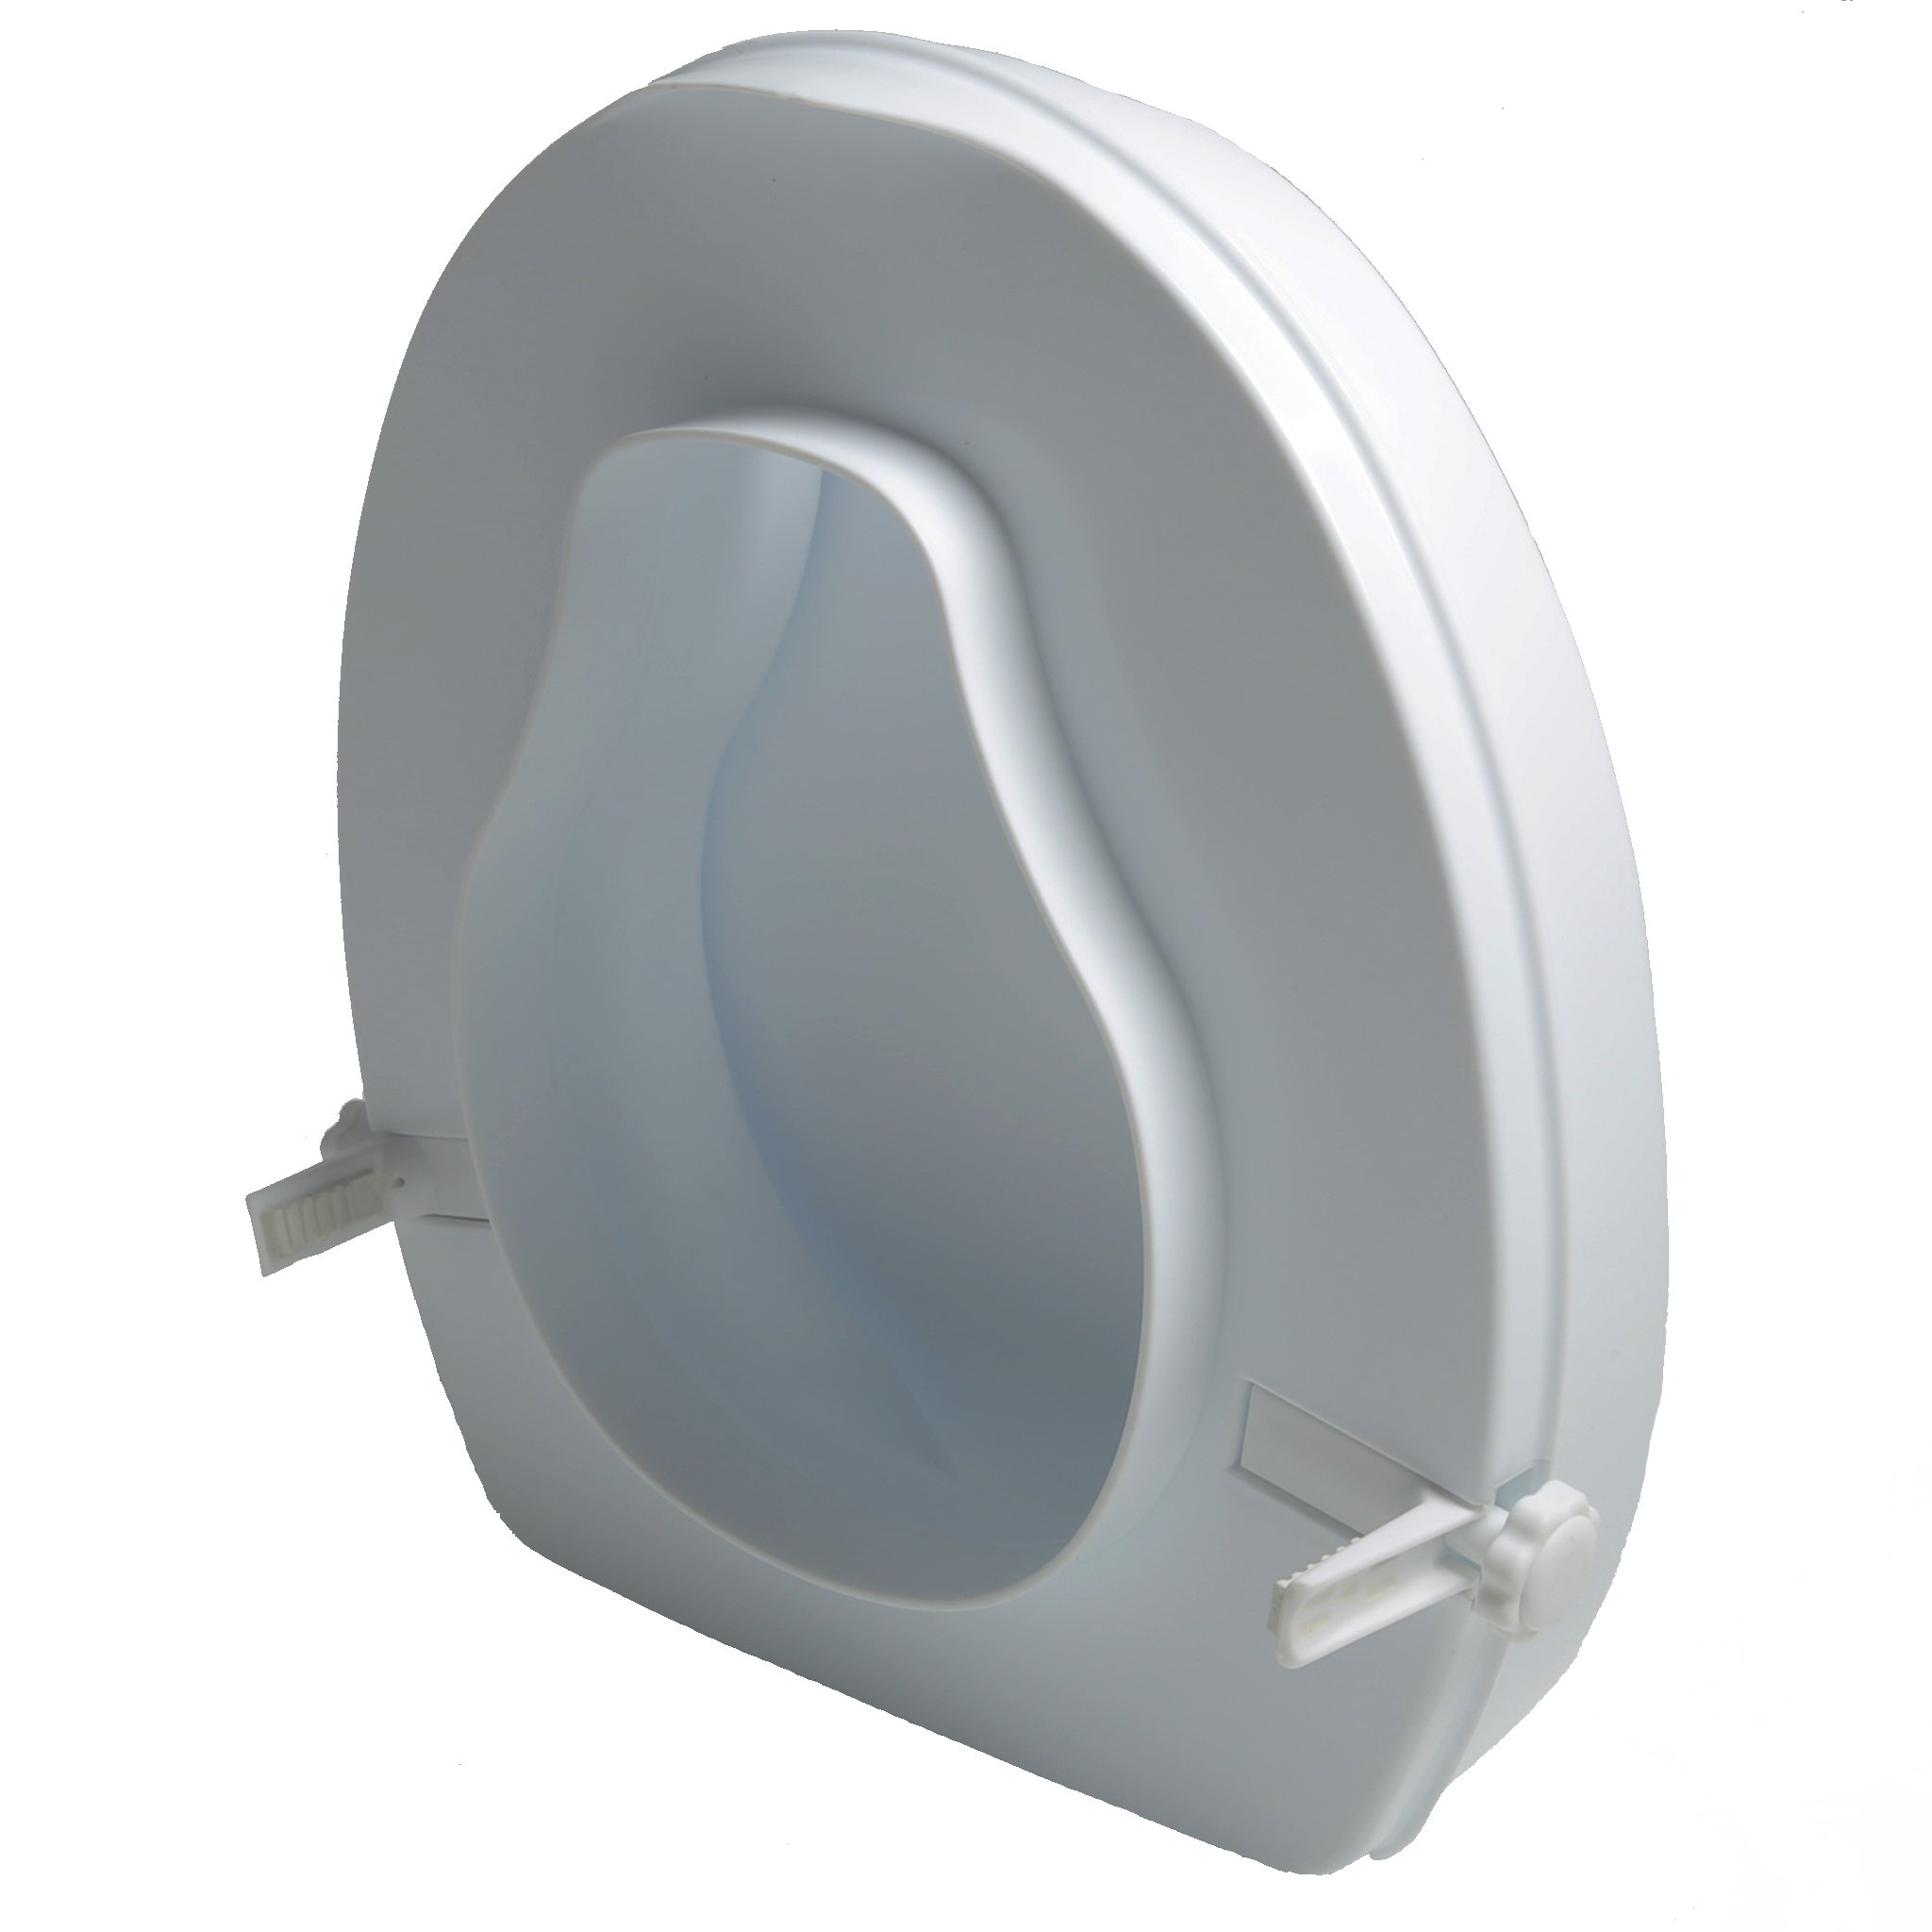 Raised Toilet Seat Increase Height Over Commode 2 Inch